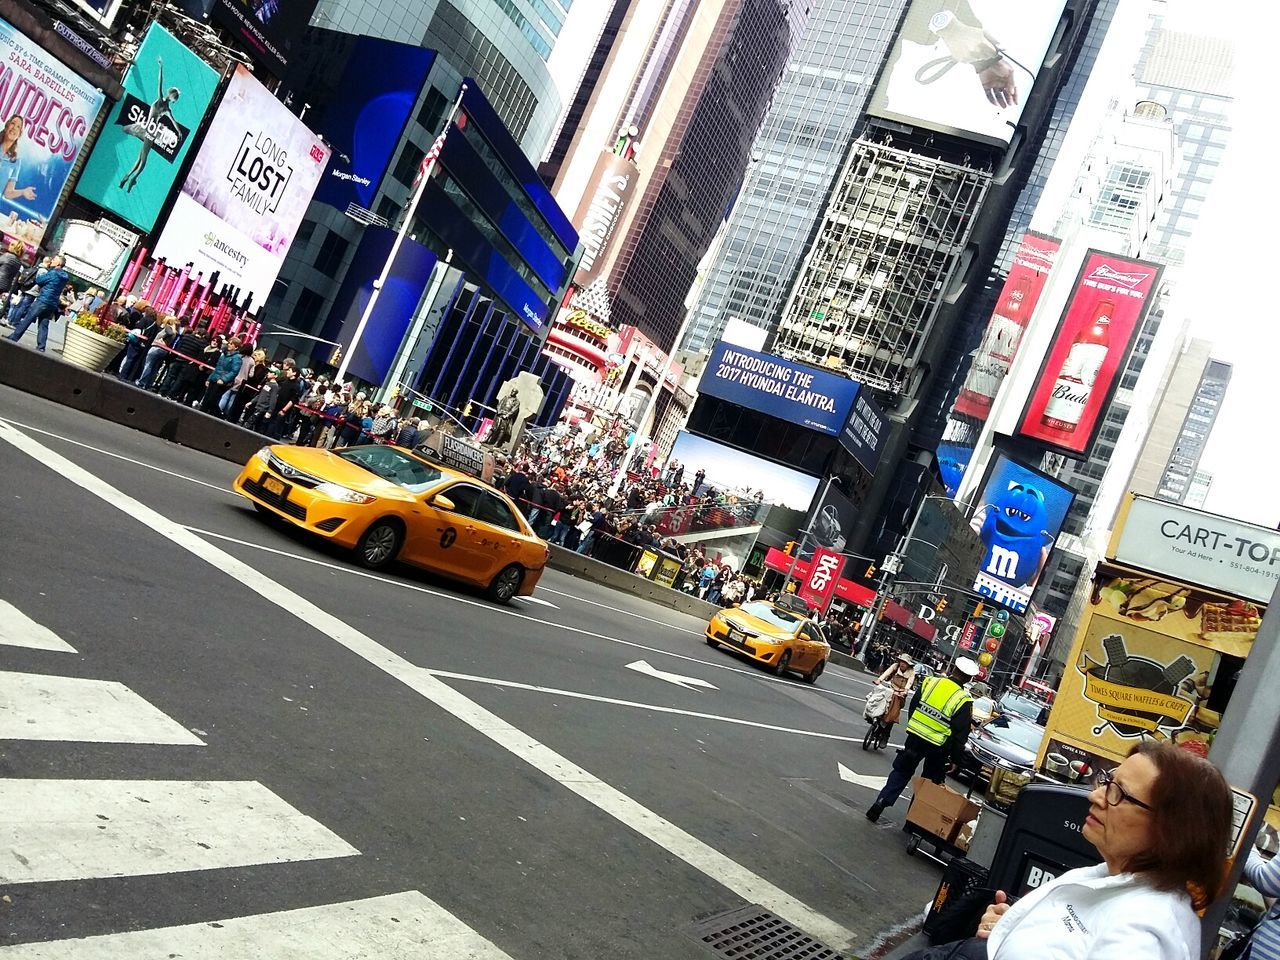 Yellow Taxi Taxi Street Transportation Yellow Car City Road Day Outdoors No People Newyorkcity City